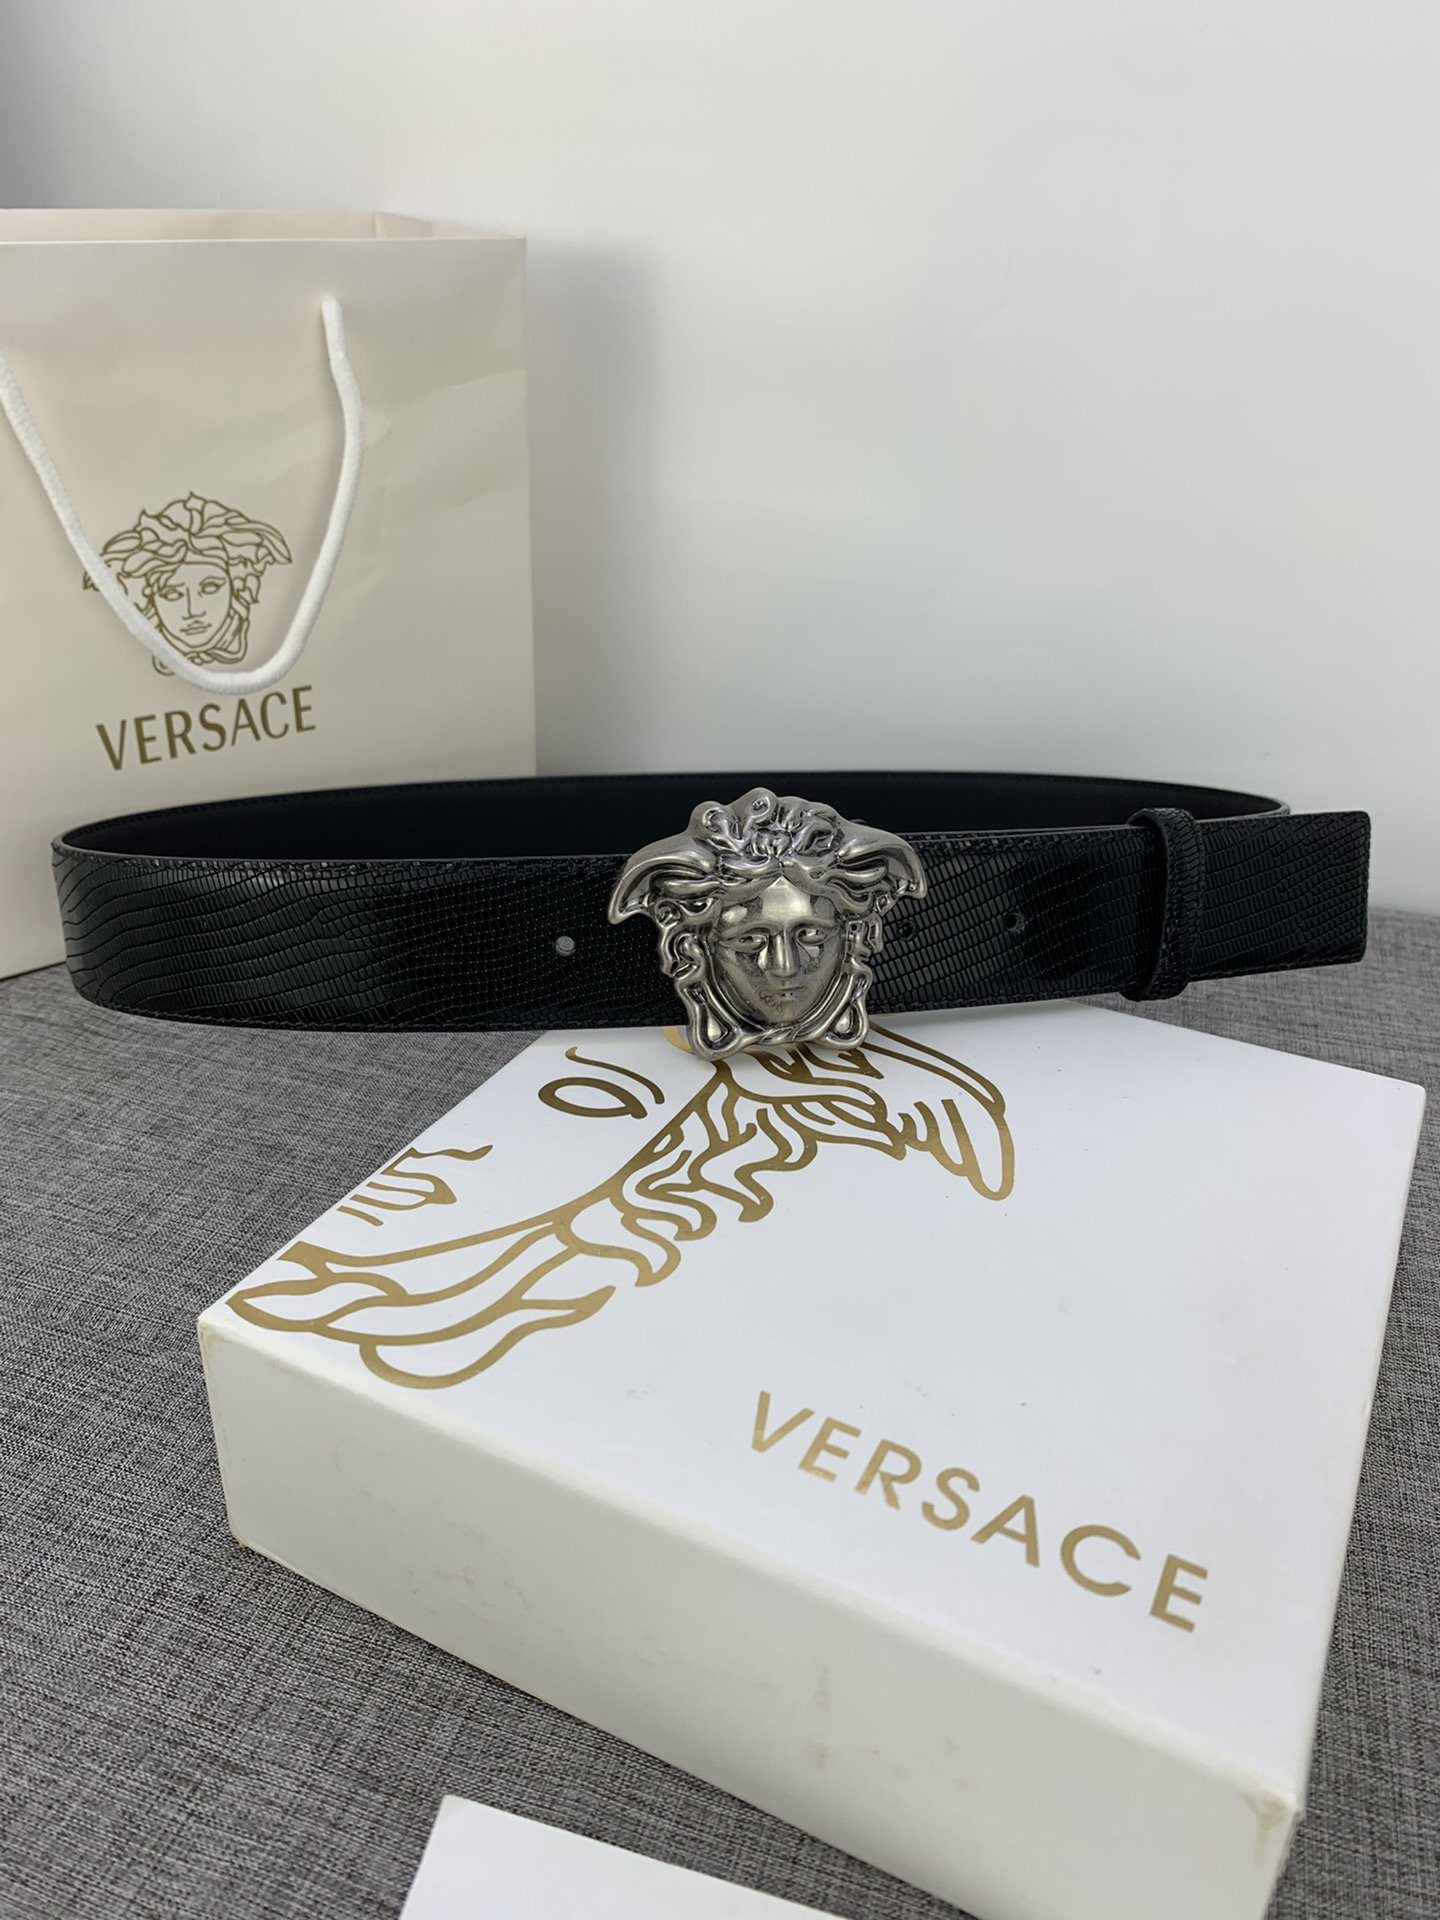 Cheap Replica Versace Men Reversible Leather Belt Width 4cm With Gold Buckle 026